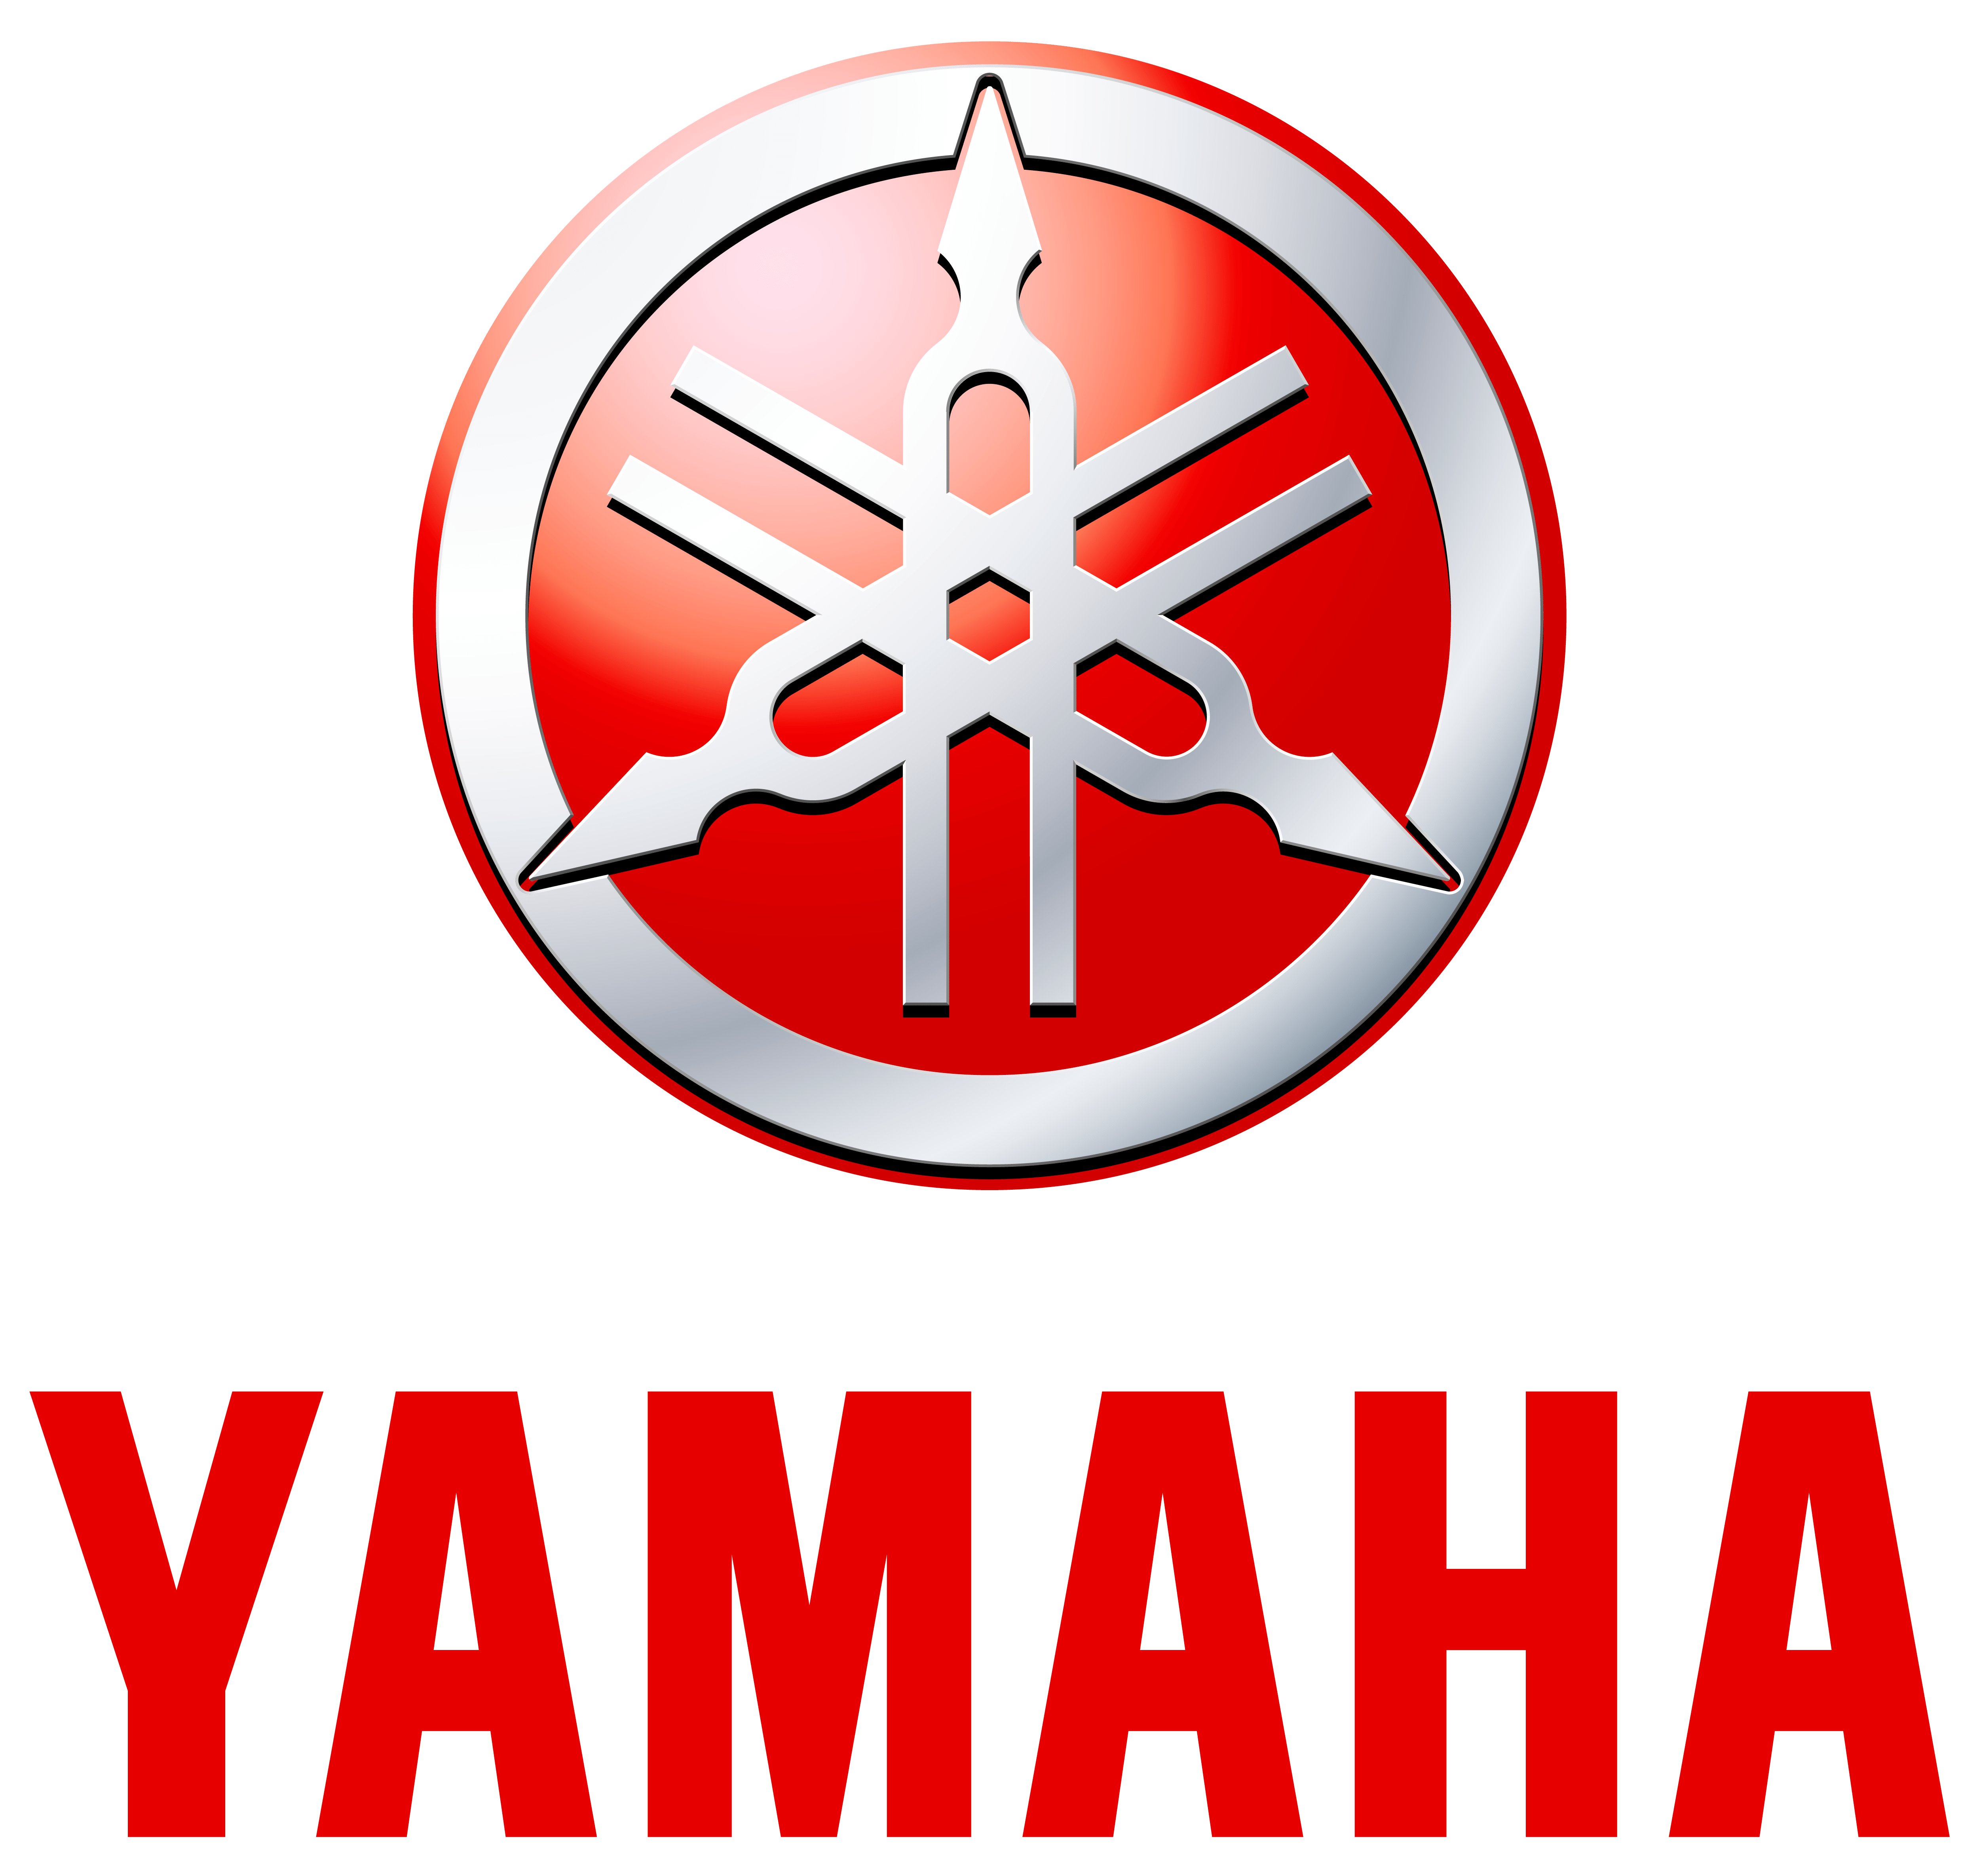 brand yamaha motorcycle logo company history and meaning bike emblem #32528